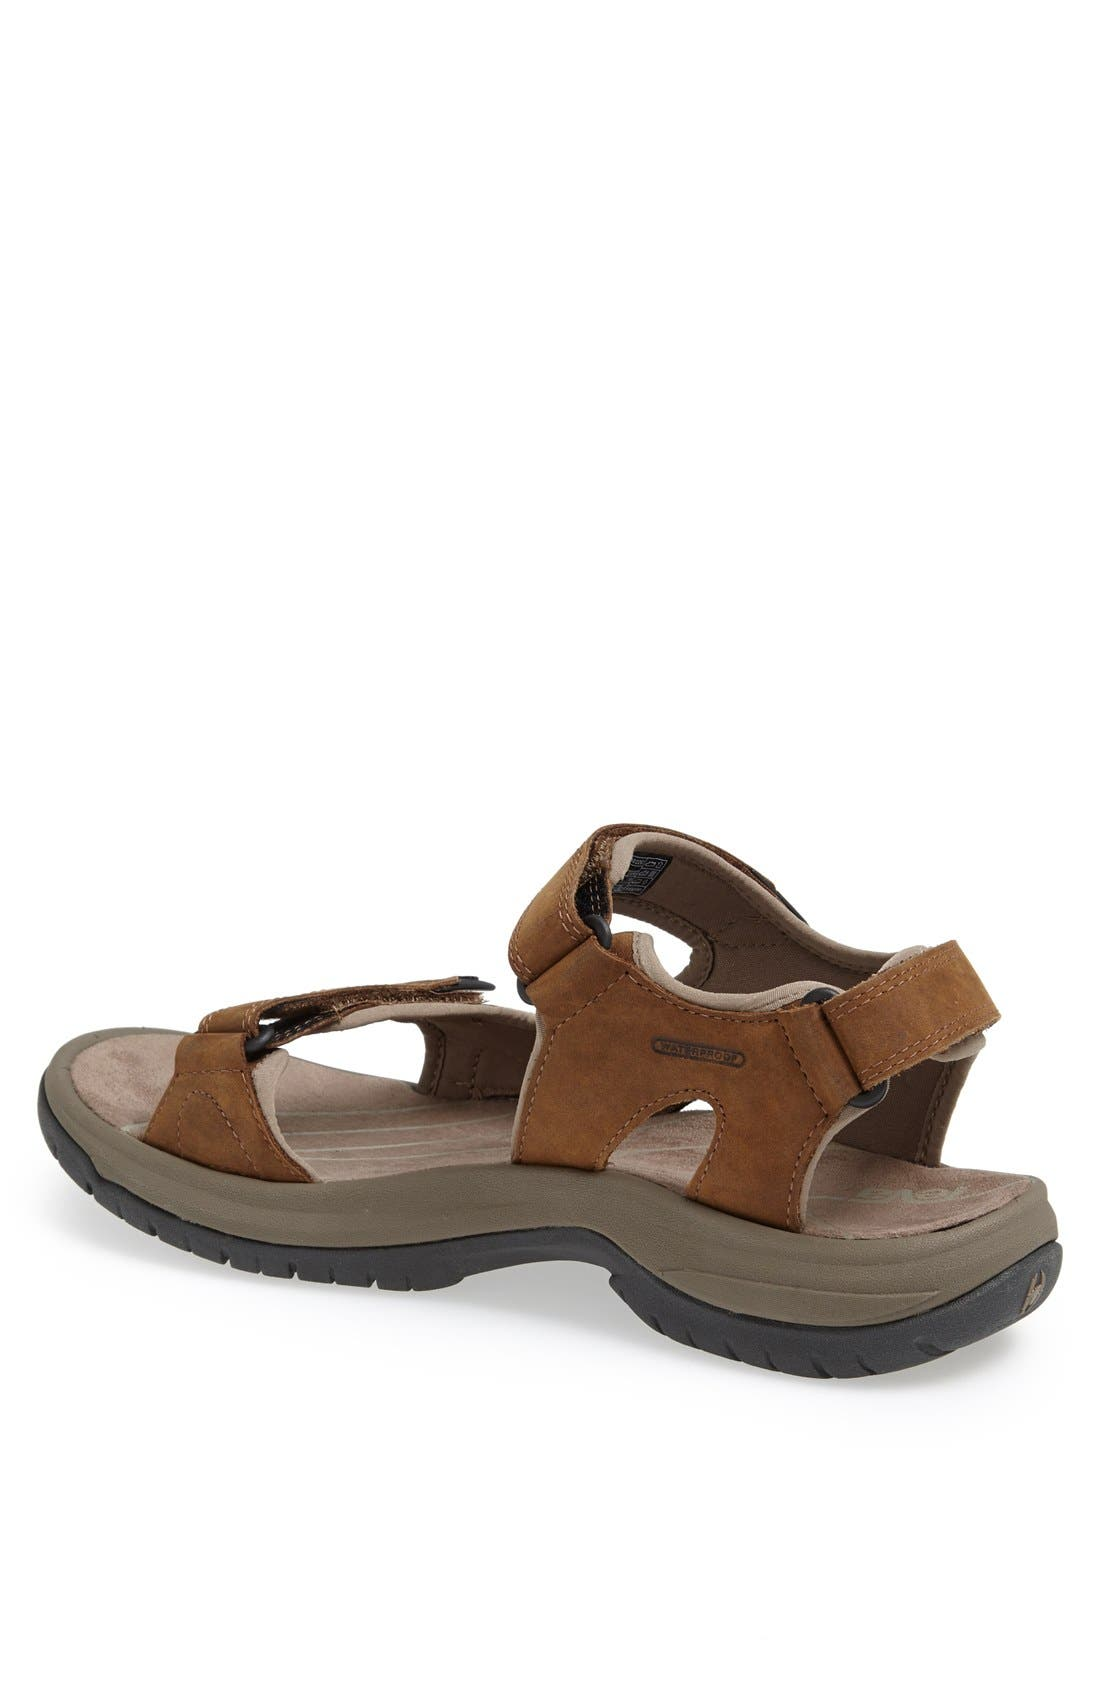 Alternate Image 2  - Teva 'Jetter' Sandal (Men)